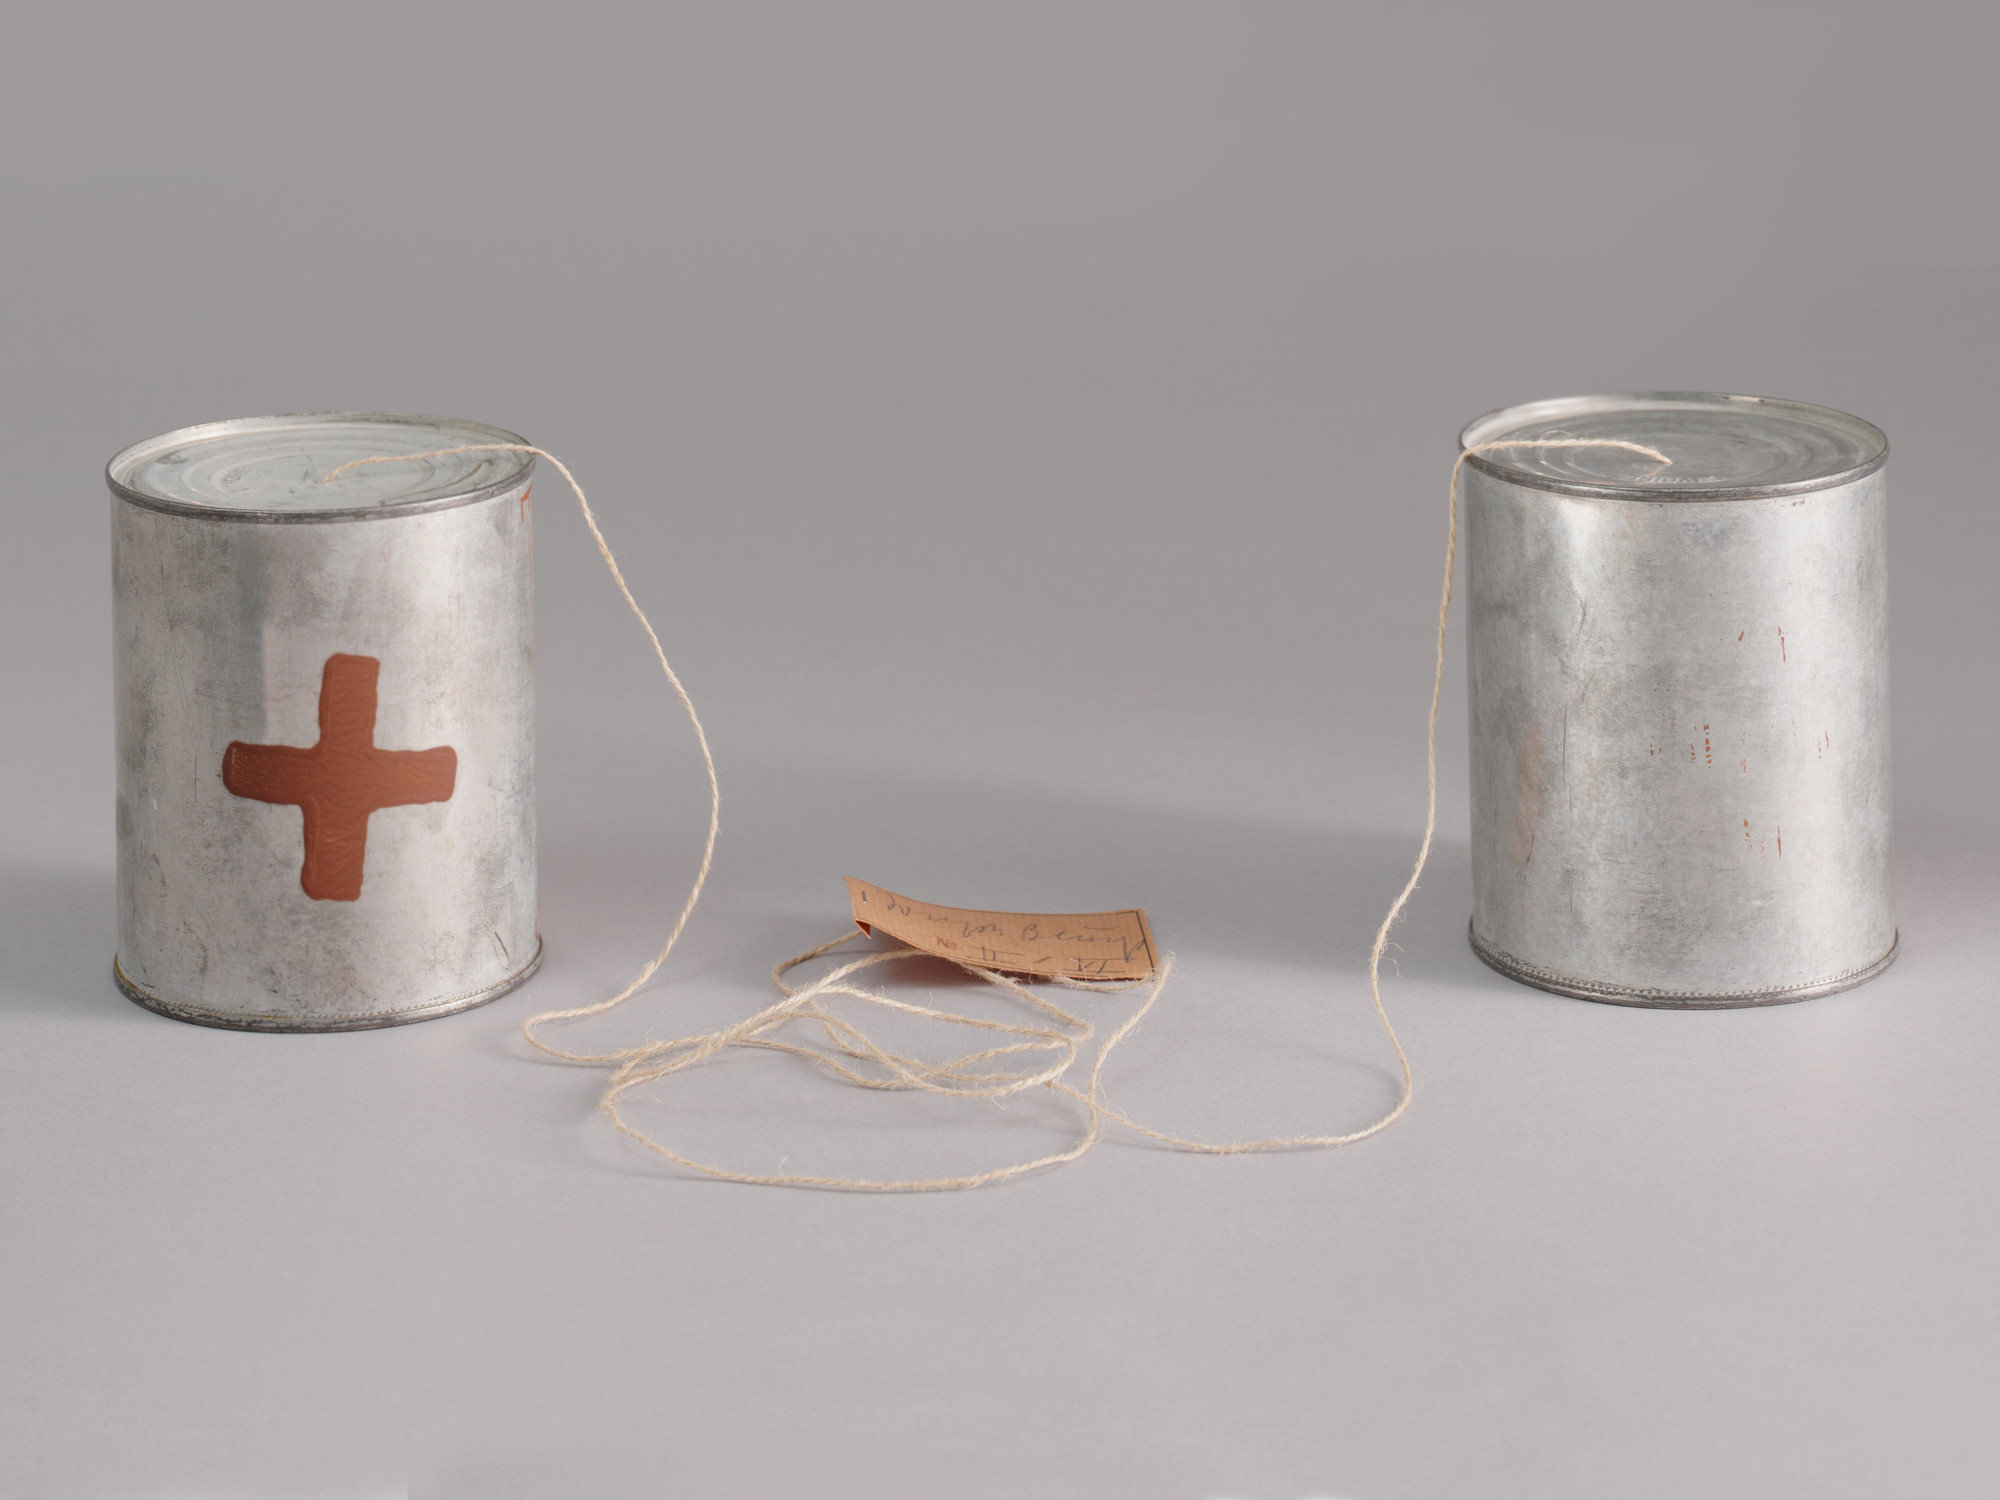 Joseph Beuys. Telephone T–––––R (Telefon S–––––E). 1974. Multiple of two tin cans with paint additions, string, and paper. Riva Castleman Endowment Fund. © 2017 Artists Rights Society (ARS), New York / VG Bild-Kunst, Bonn. Photo: Thomas Griesel